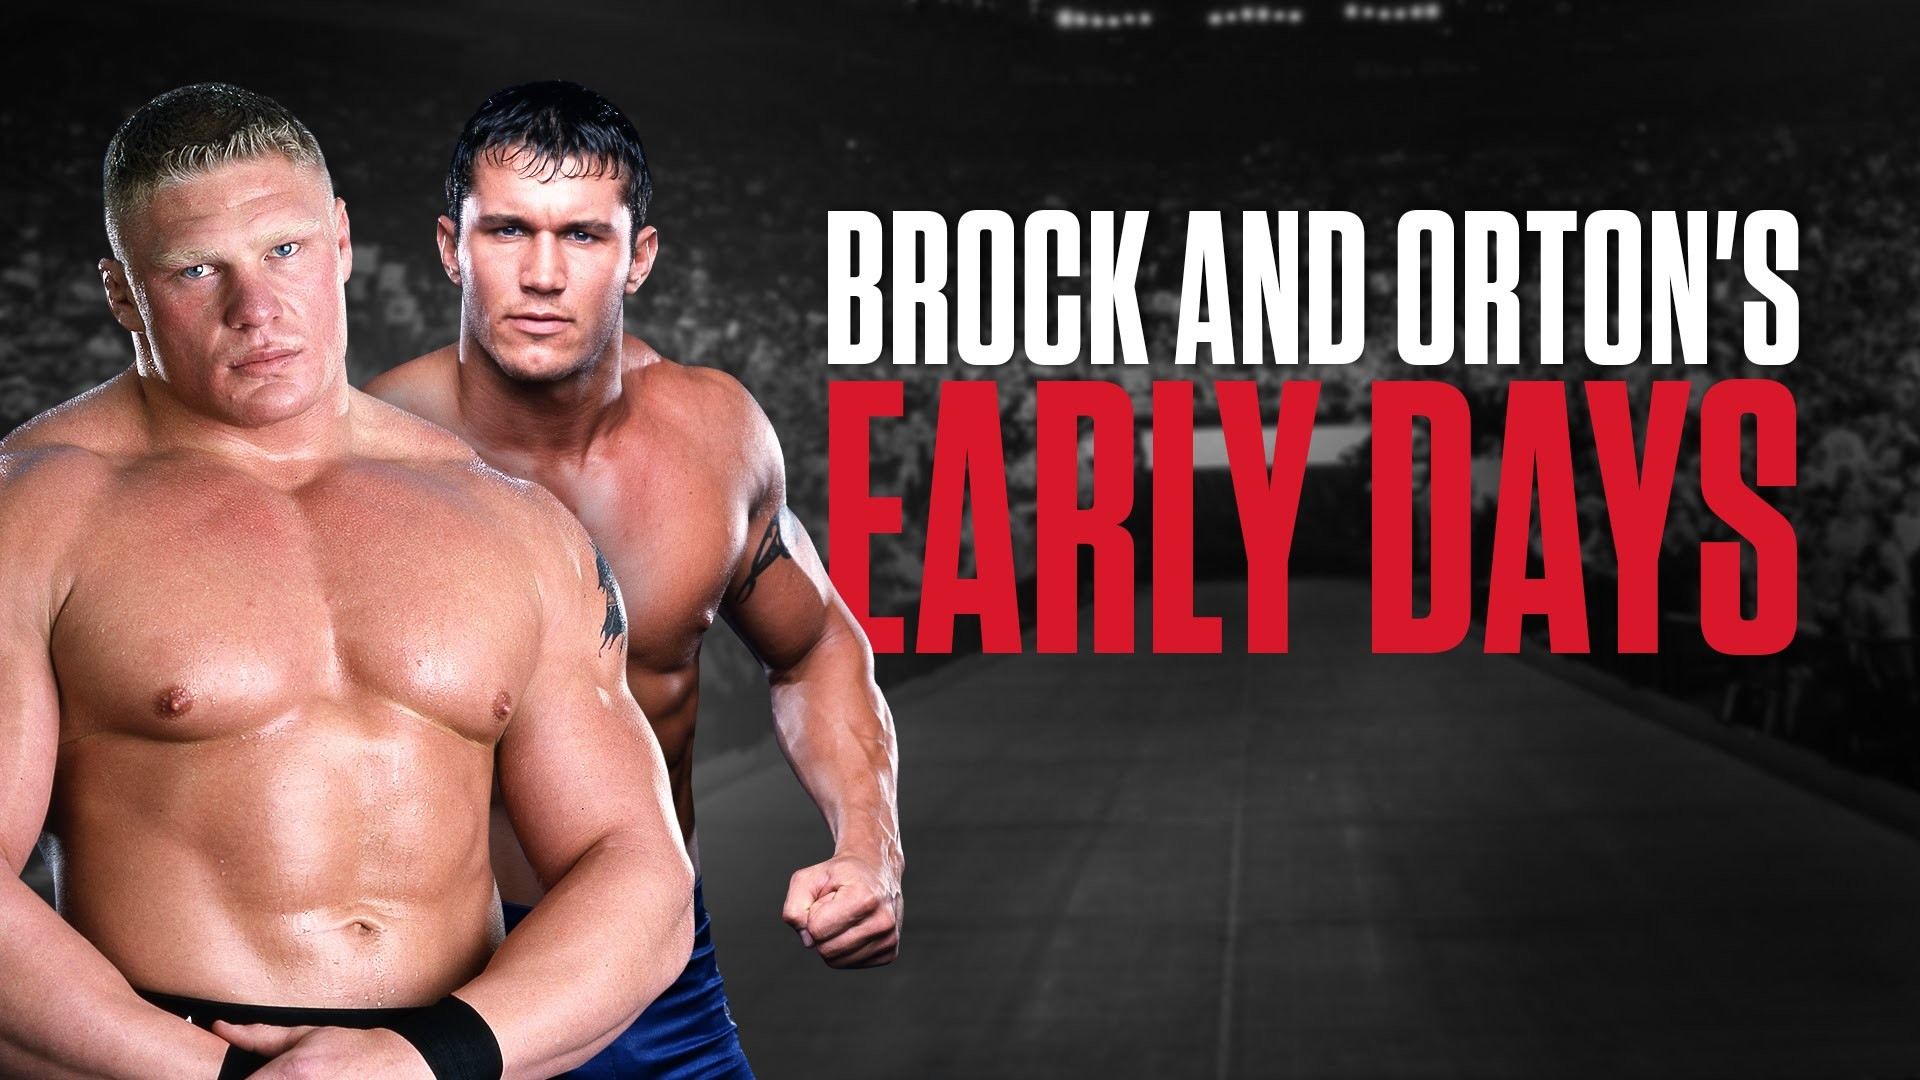 1920x1080 The forgotten history of Brock Lesnar and Randy Orton - What you need to  know.